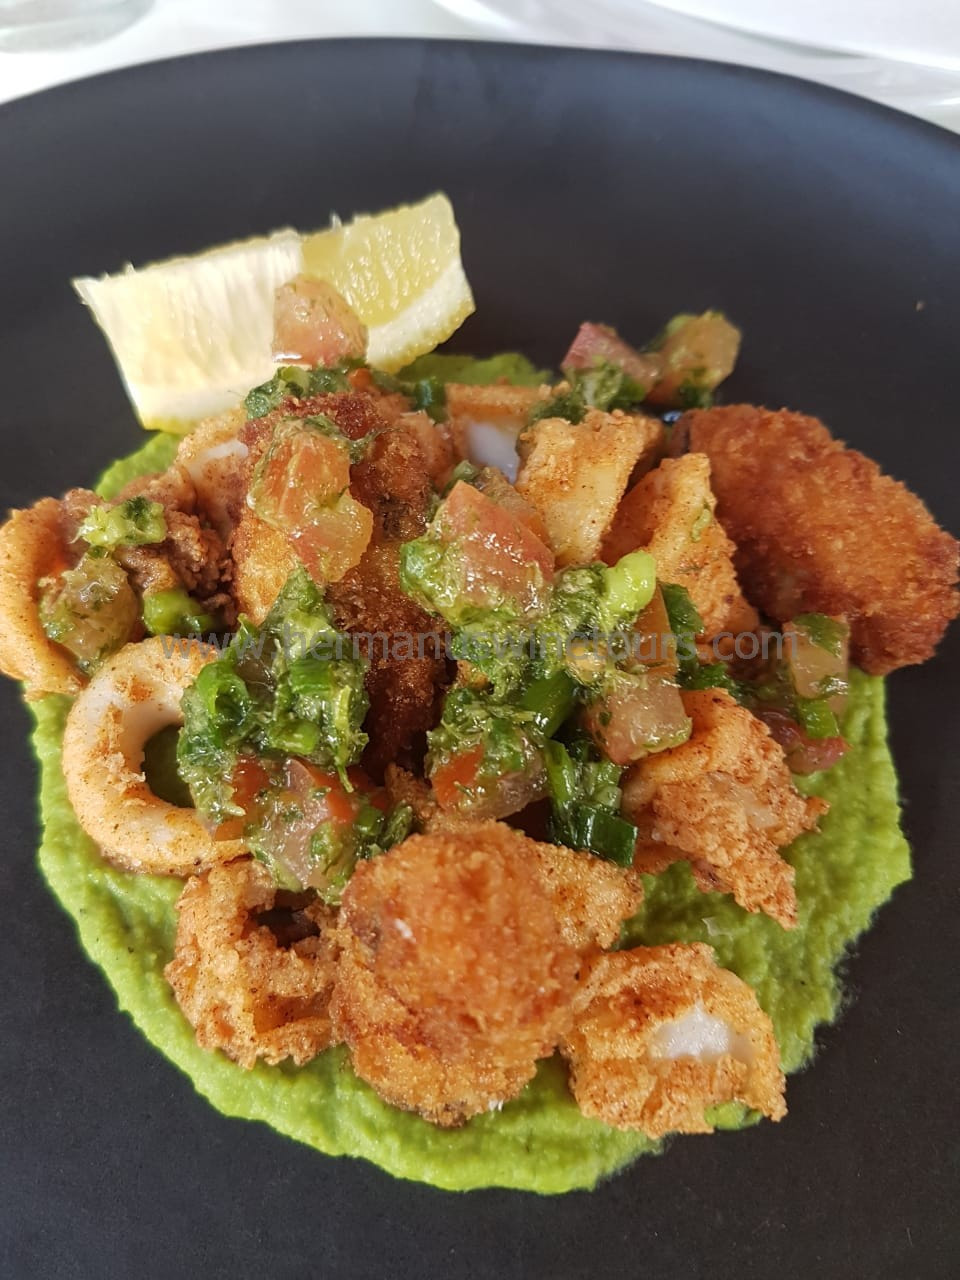 Spicy Calamari rings on a pea mash, Hermanus restaurant, near Cape Town, South Africa